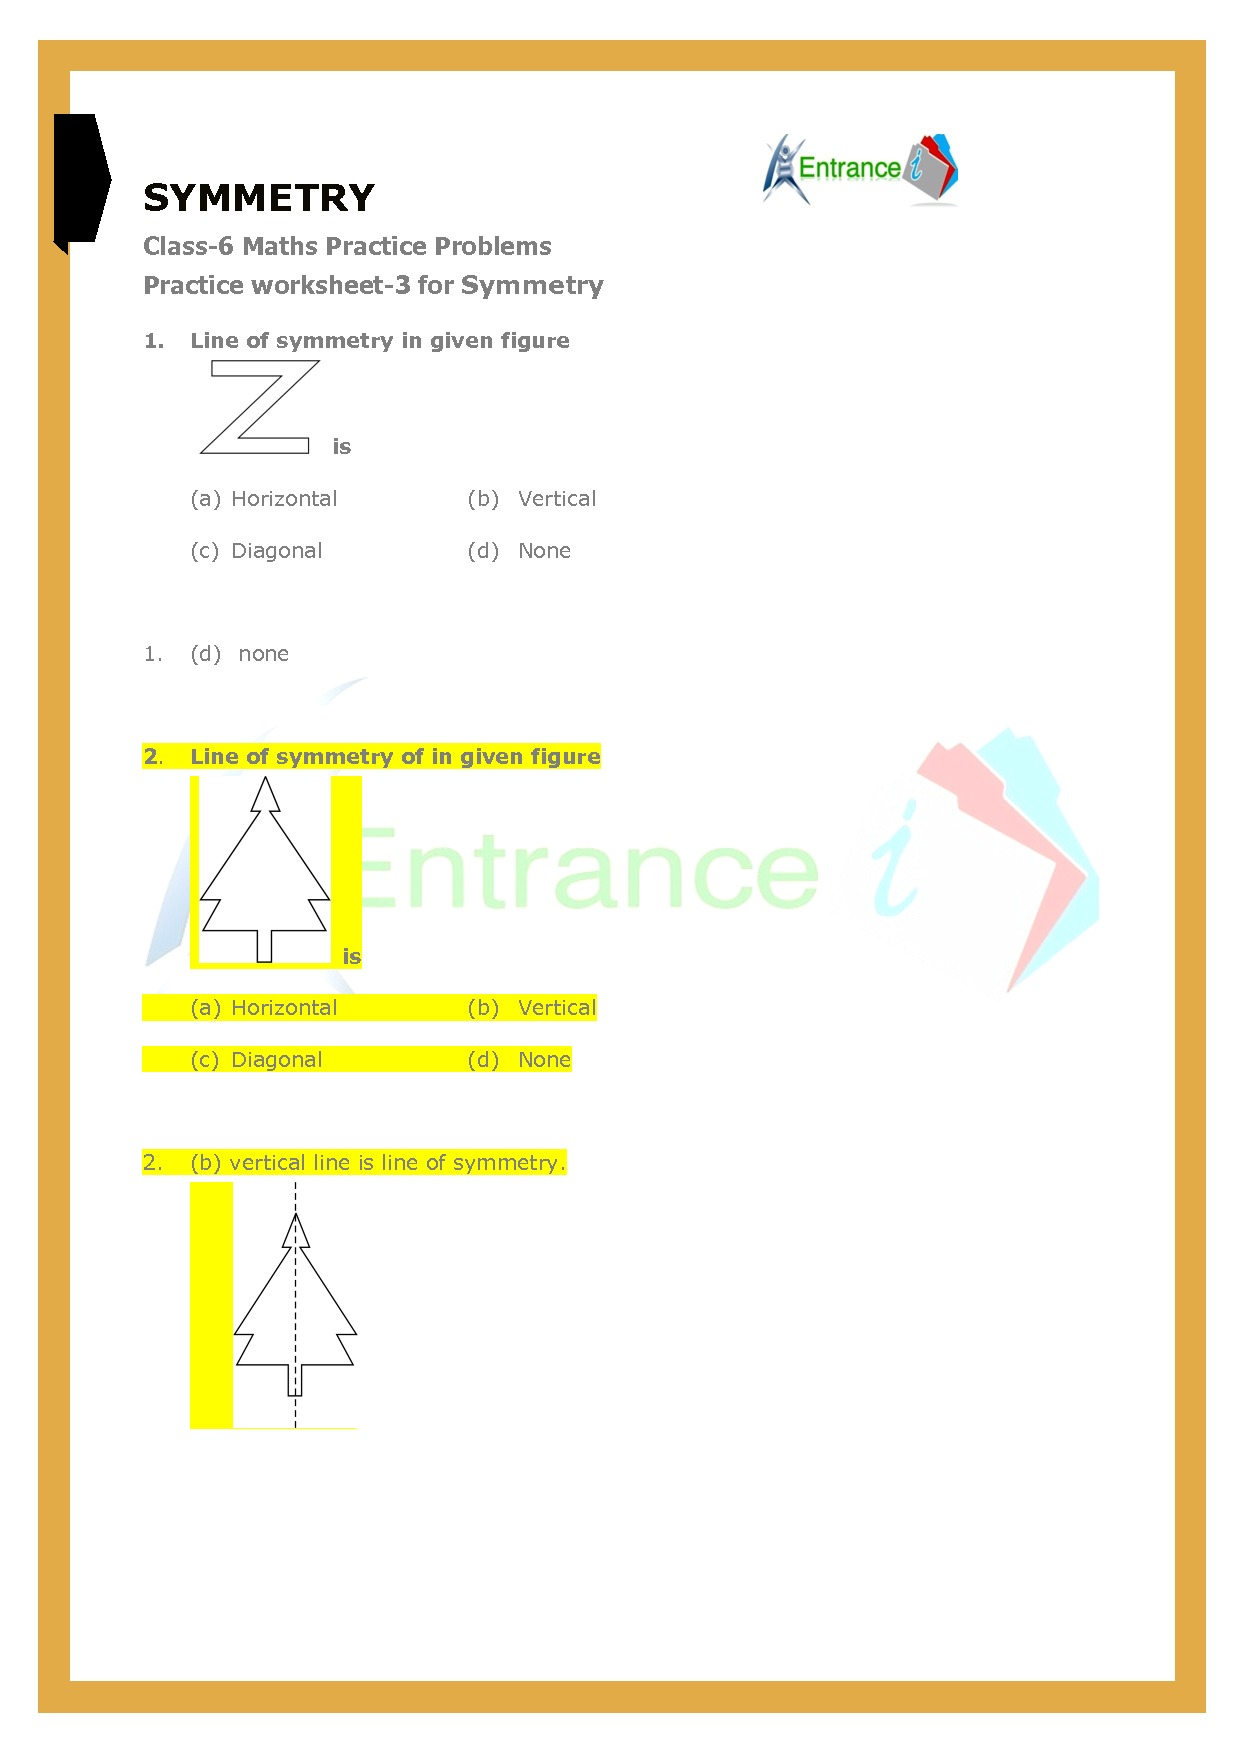 Class 6 Maths Chapter 13 Symmetry Worksheet 3 Entrancei